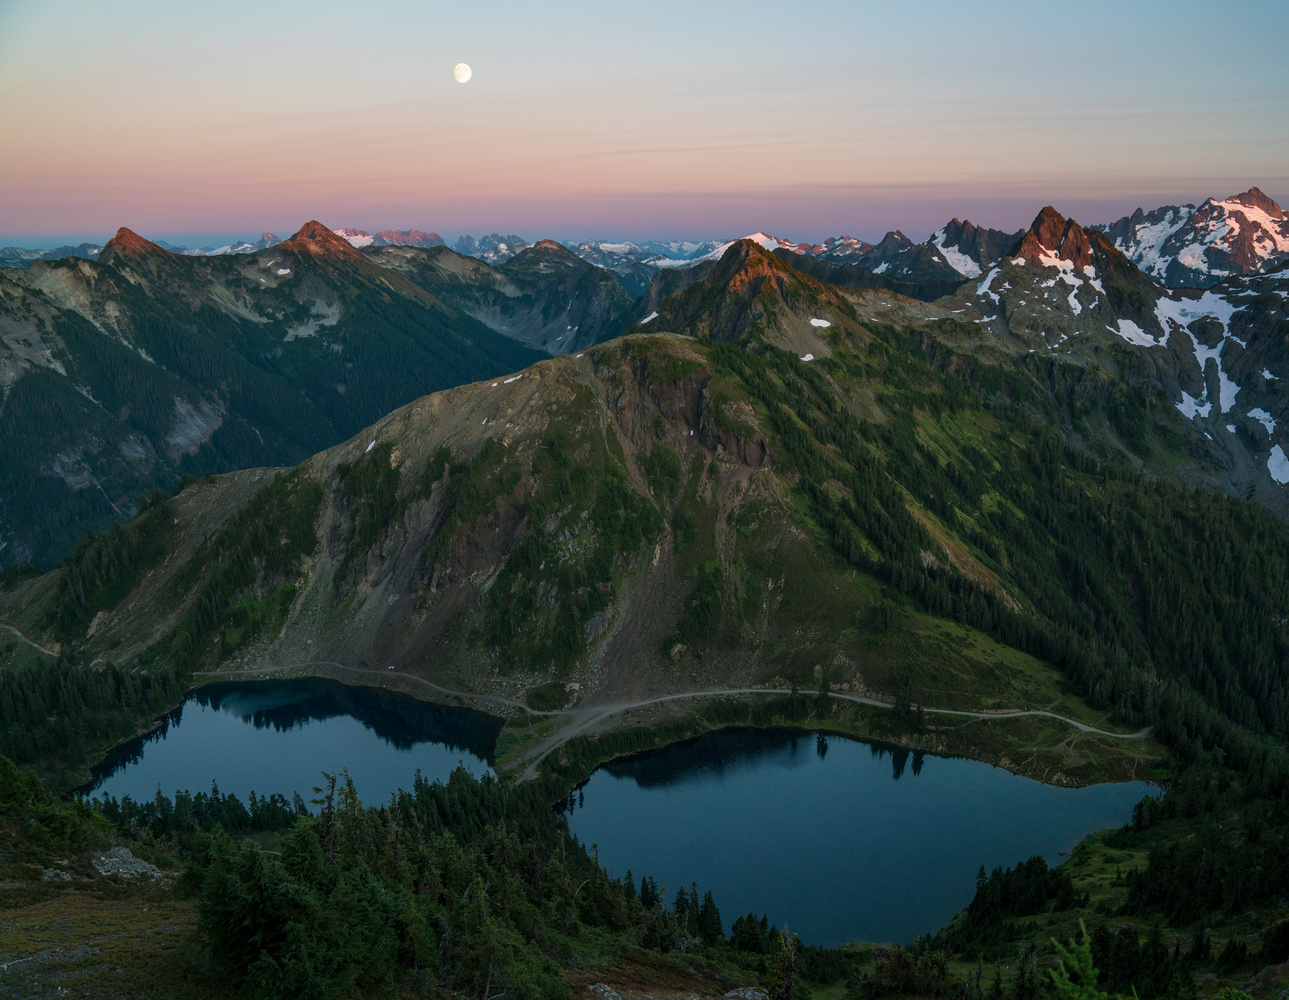 Twin Lakes Under the Moon by Autumn Schrock